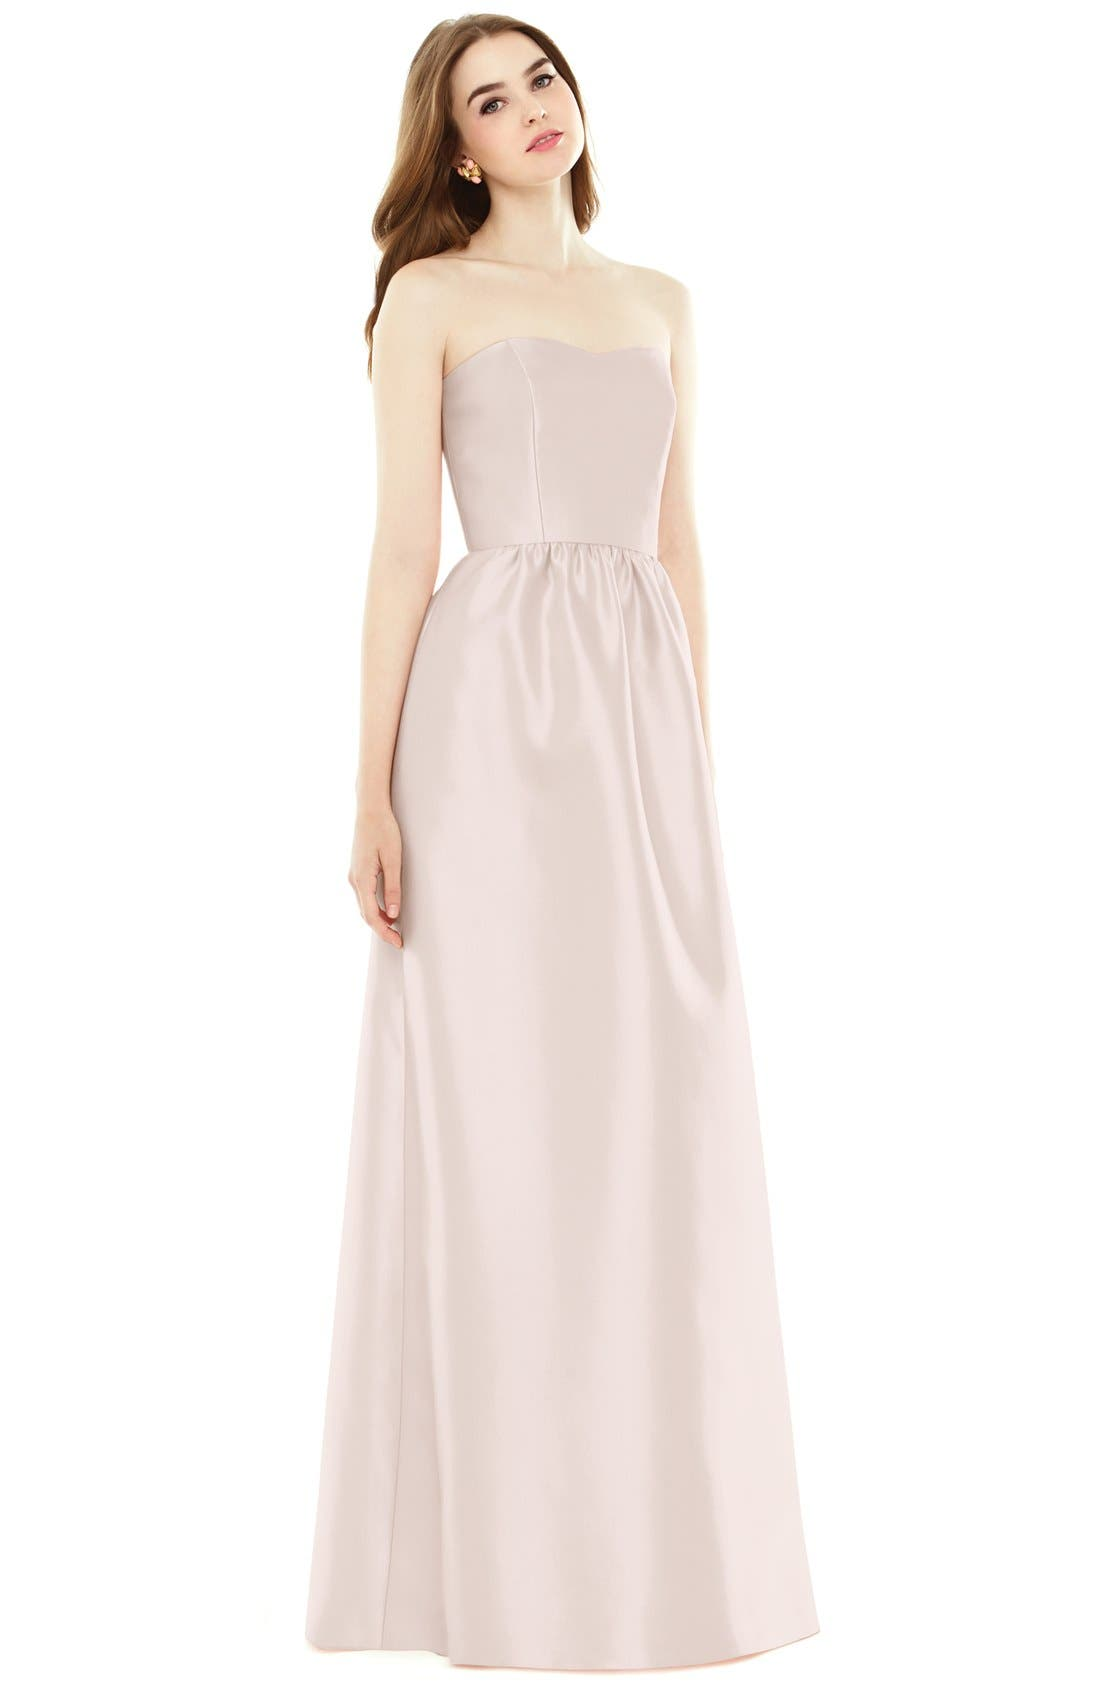 Main Image - Alfred Sung Strapless Sateen A-Line Gown